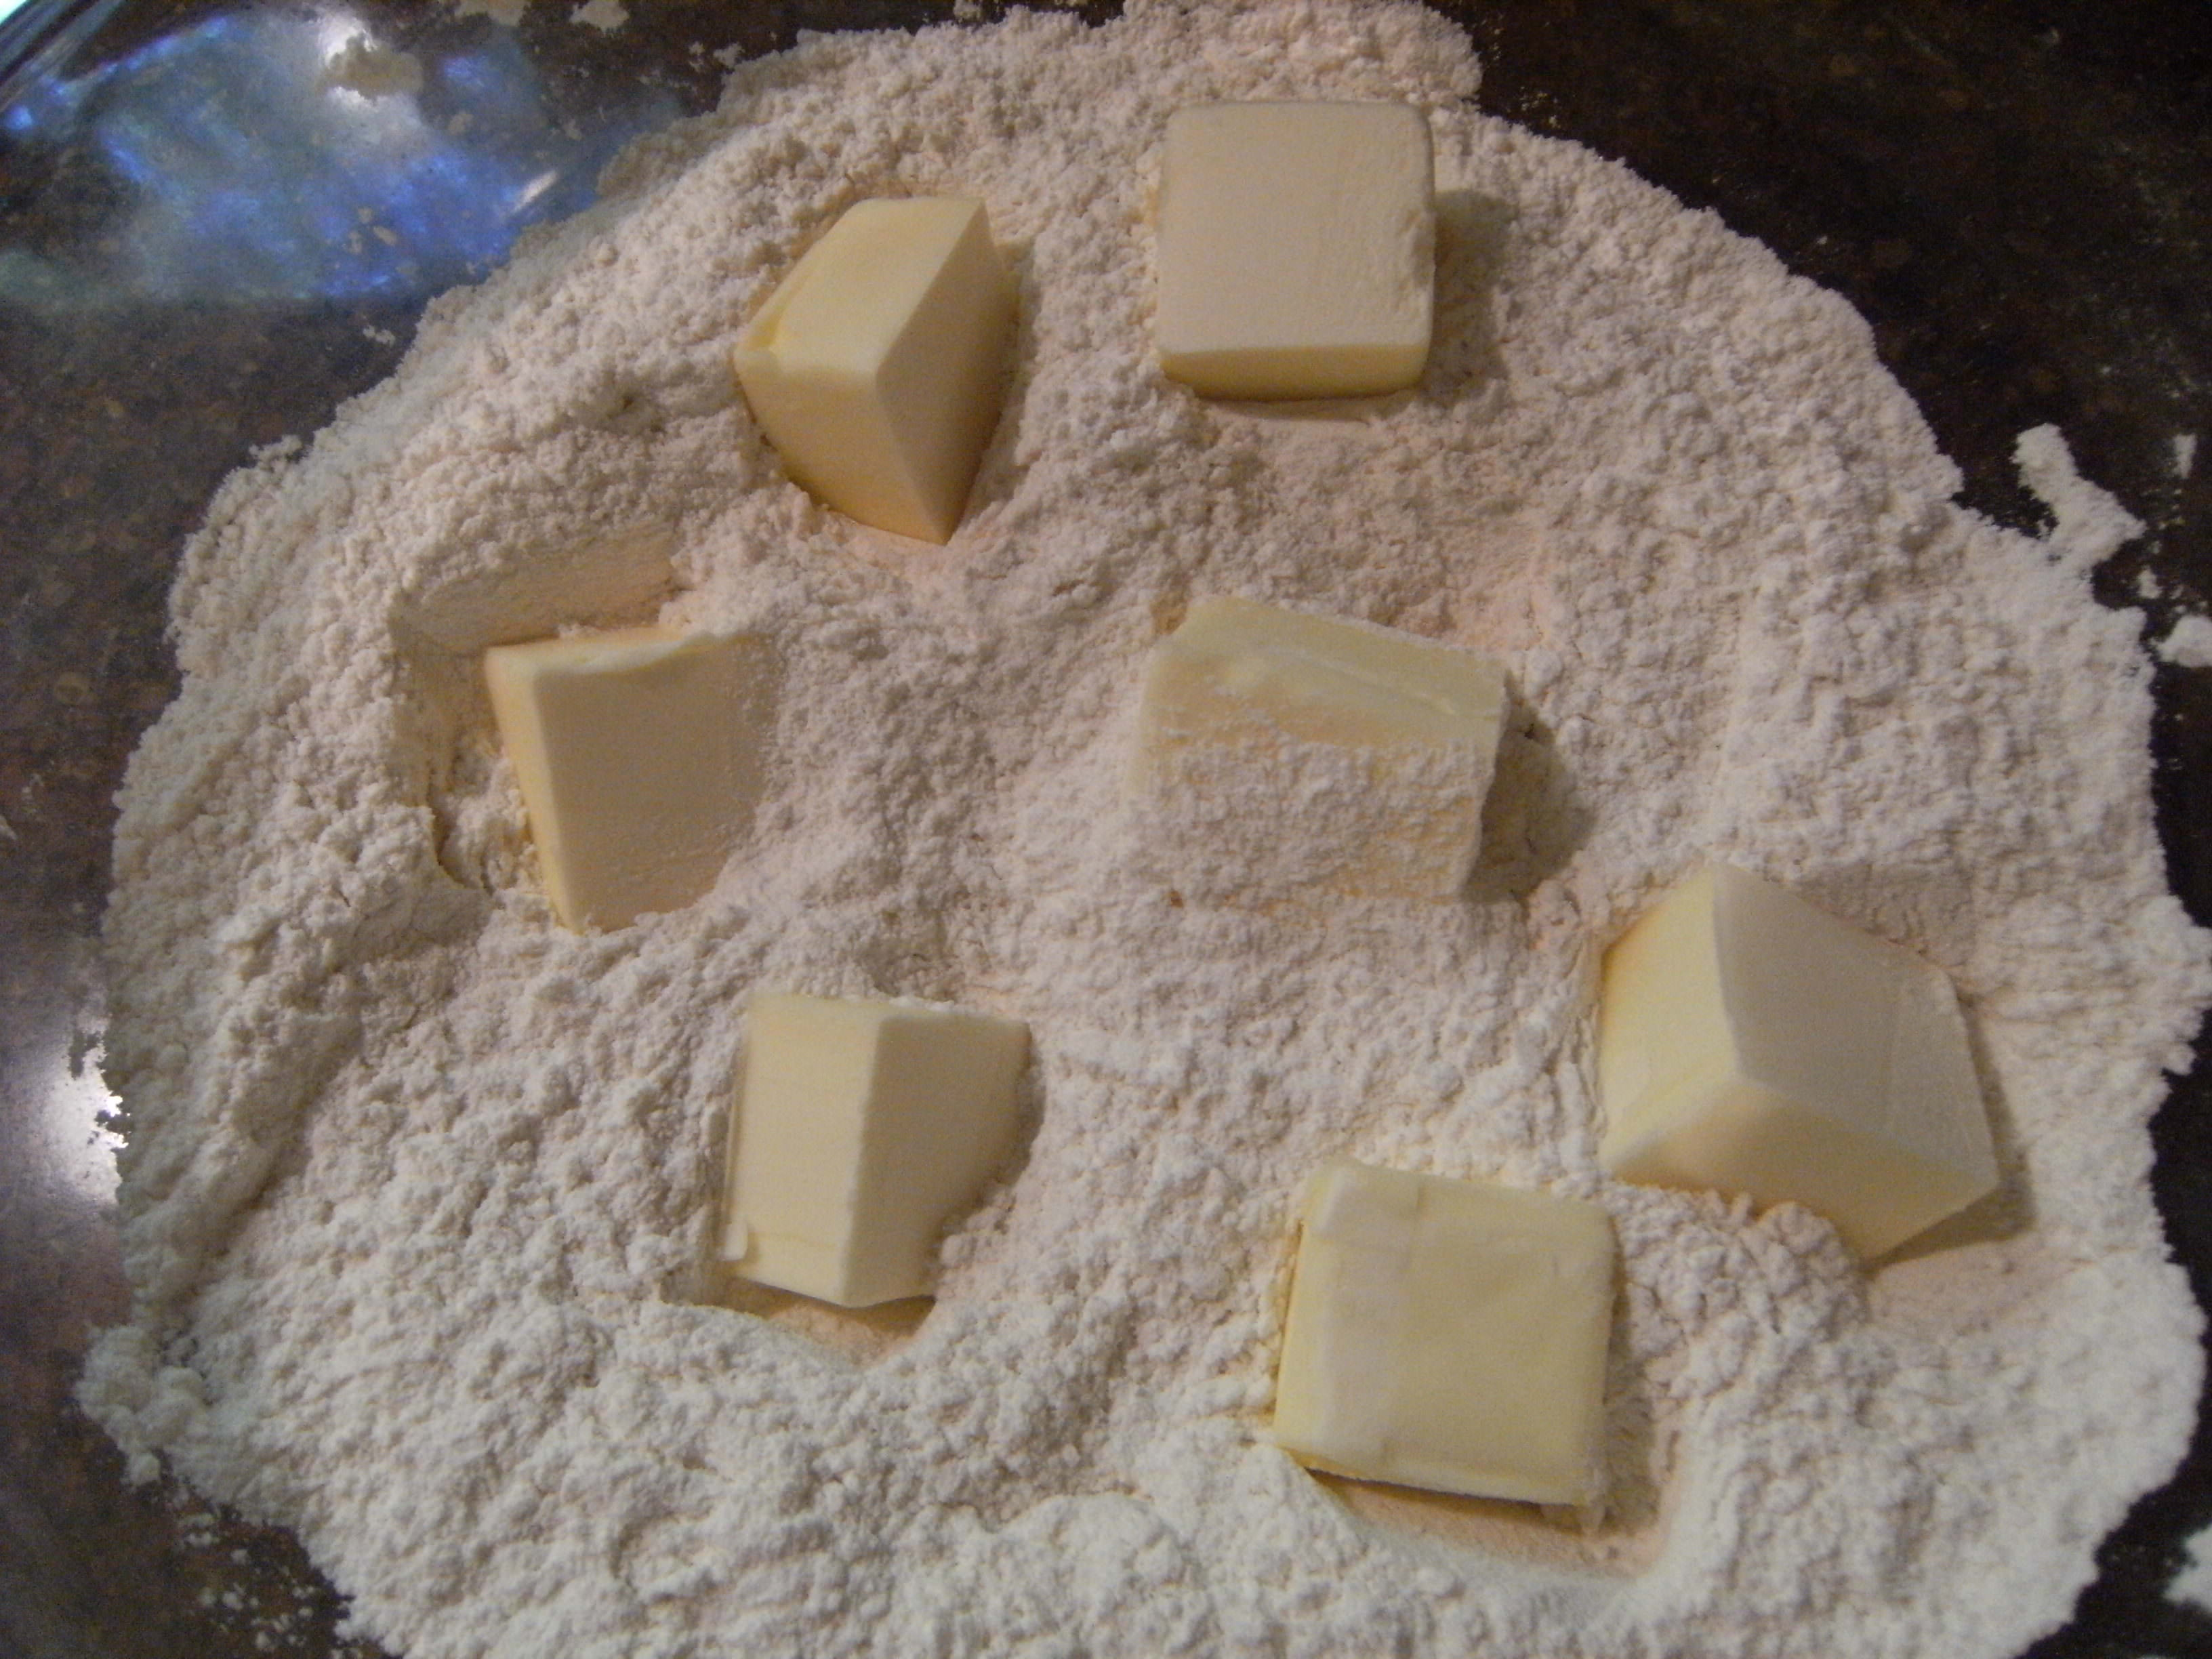 incorporating butter into dry ingredients for homemade biscuits